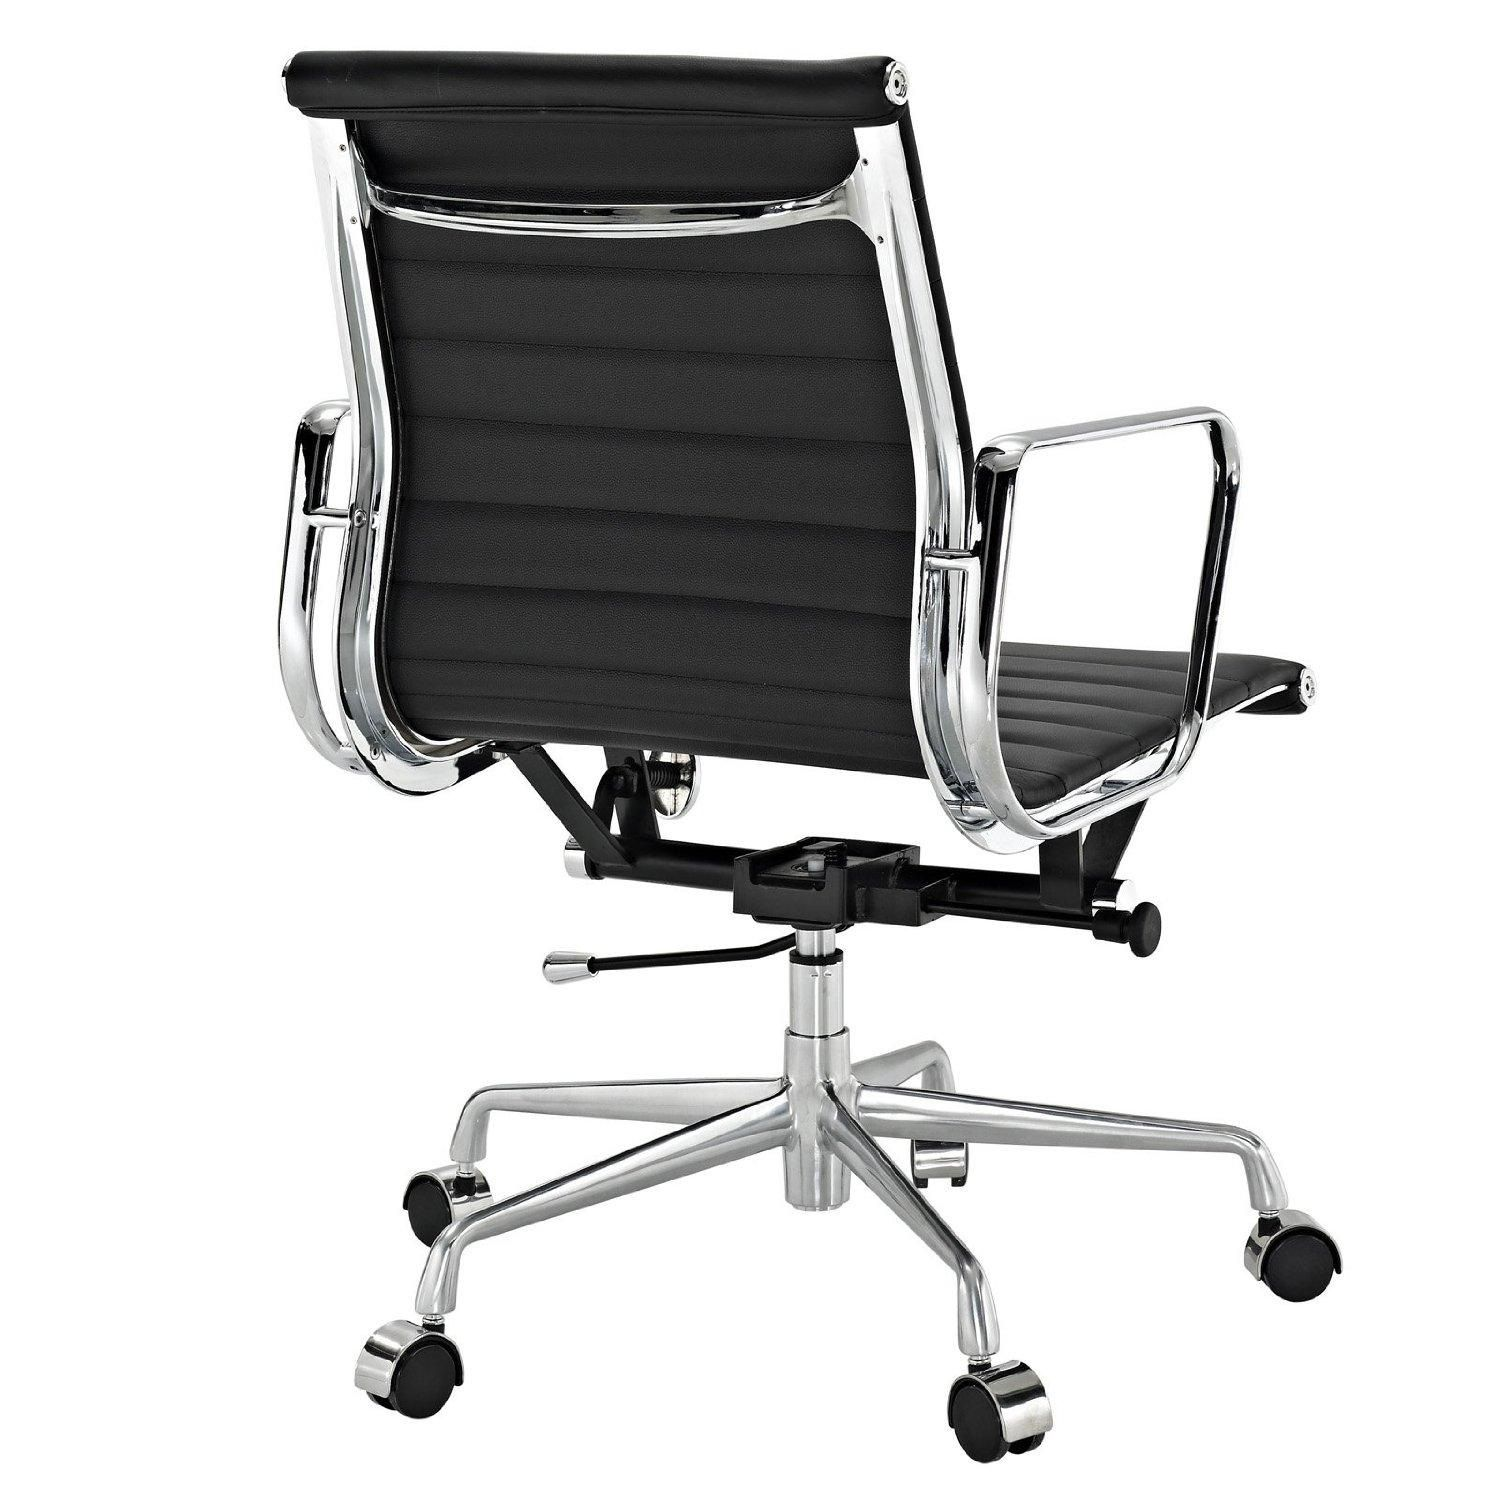 upholstery chairs puter amazon white office mid btexpert swivel related ergonomic chair leather fresh awesome armless image task essentials mesh back of ribbed